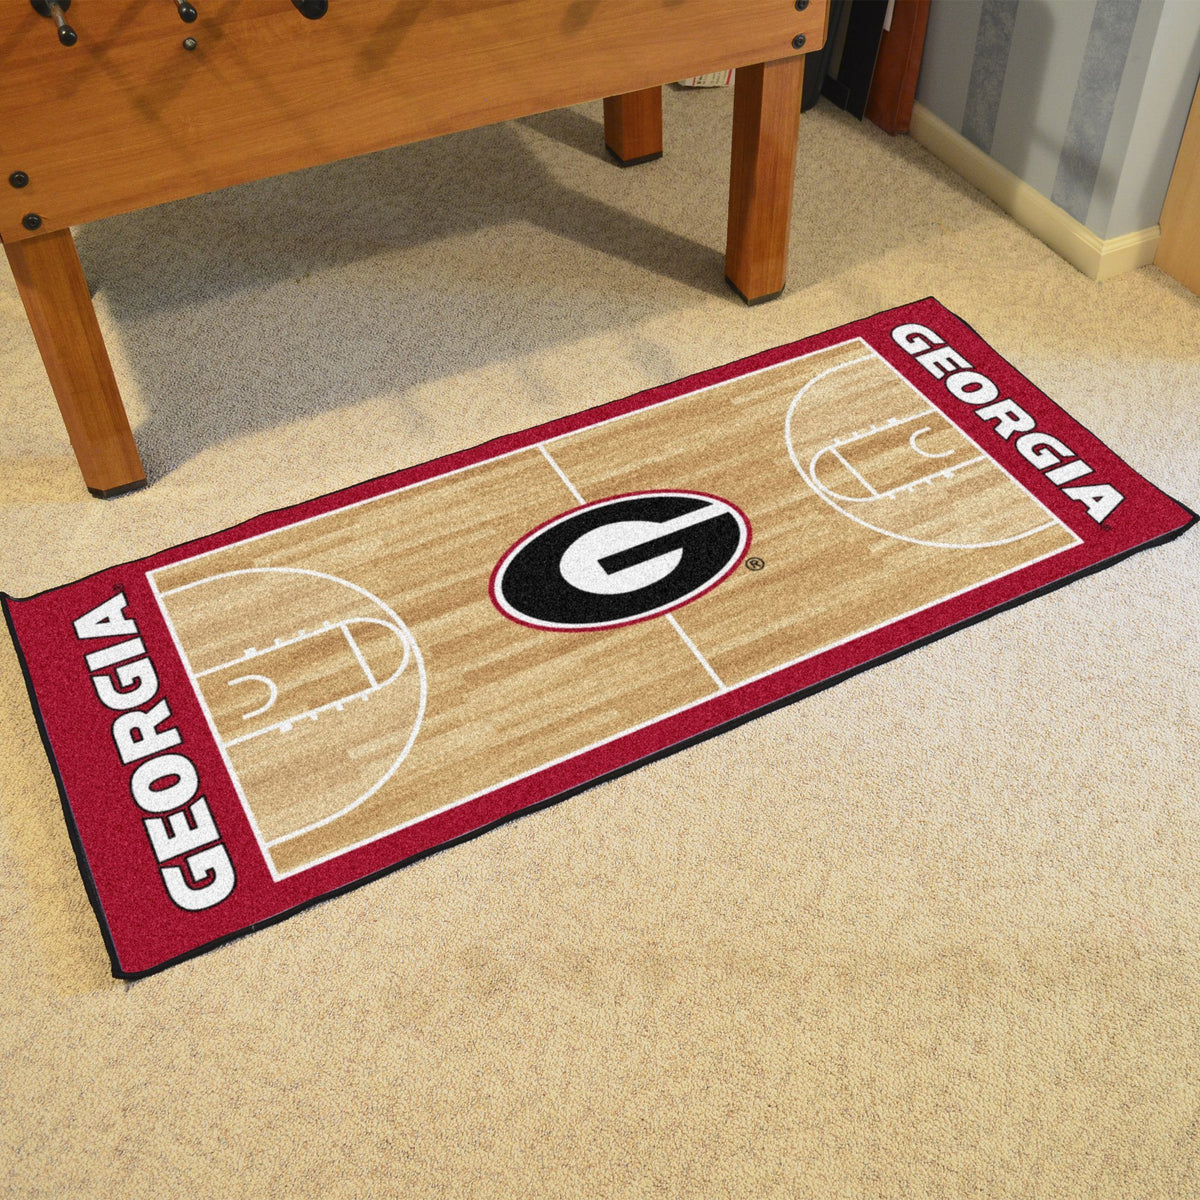 Collegiate - NCAA Basketball Runner Collegiate Mats, Rectangular Mats, NCAA Basketball Runner, Collegiate, Home Fan Mats Georgia